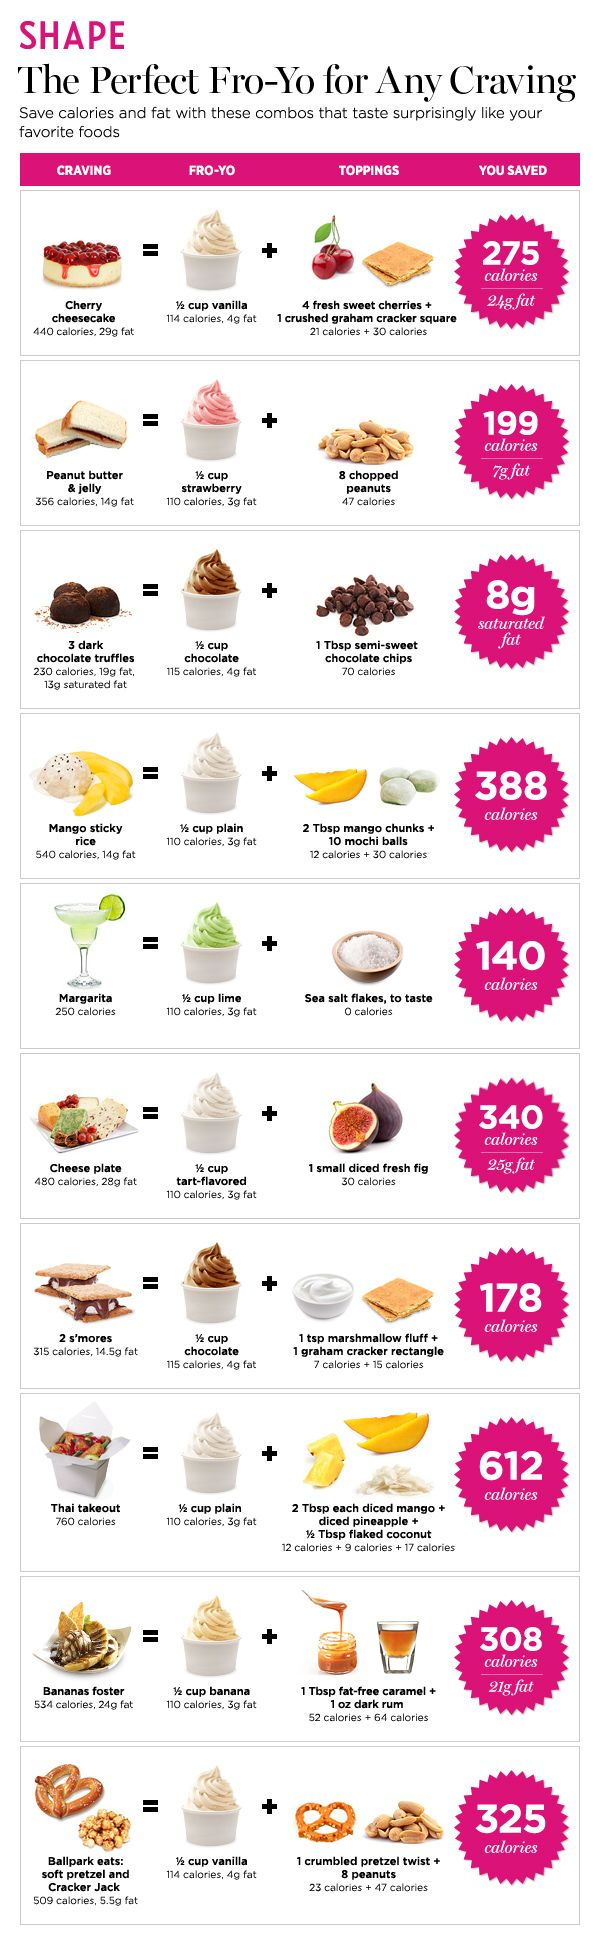 Got a craving? Satisfy it and save calories and fat with these frozen yogurt combos!